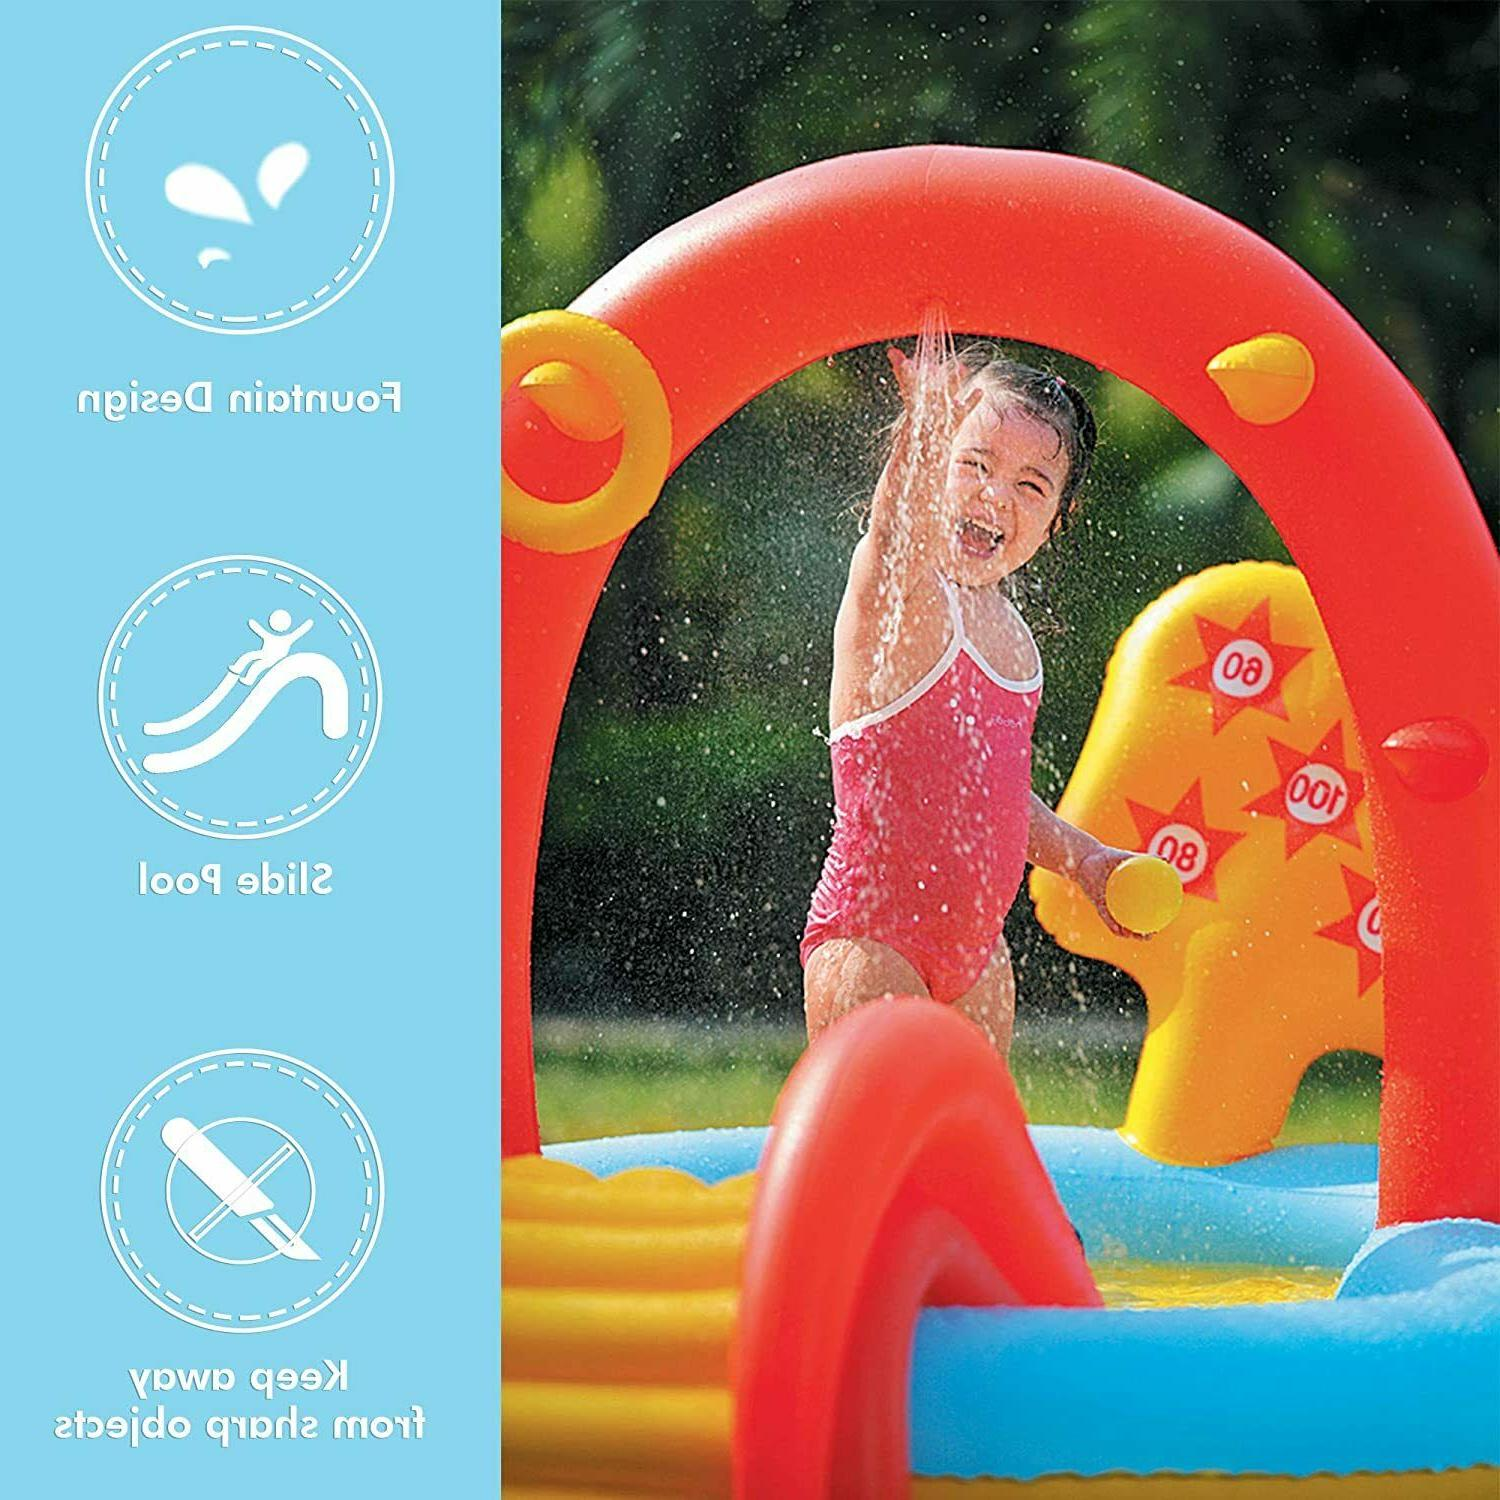 Inflatable Swimming Pool for Kids, Sliding Play Pool, Sprinkler Water Toy